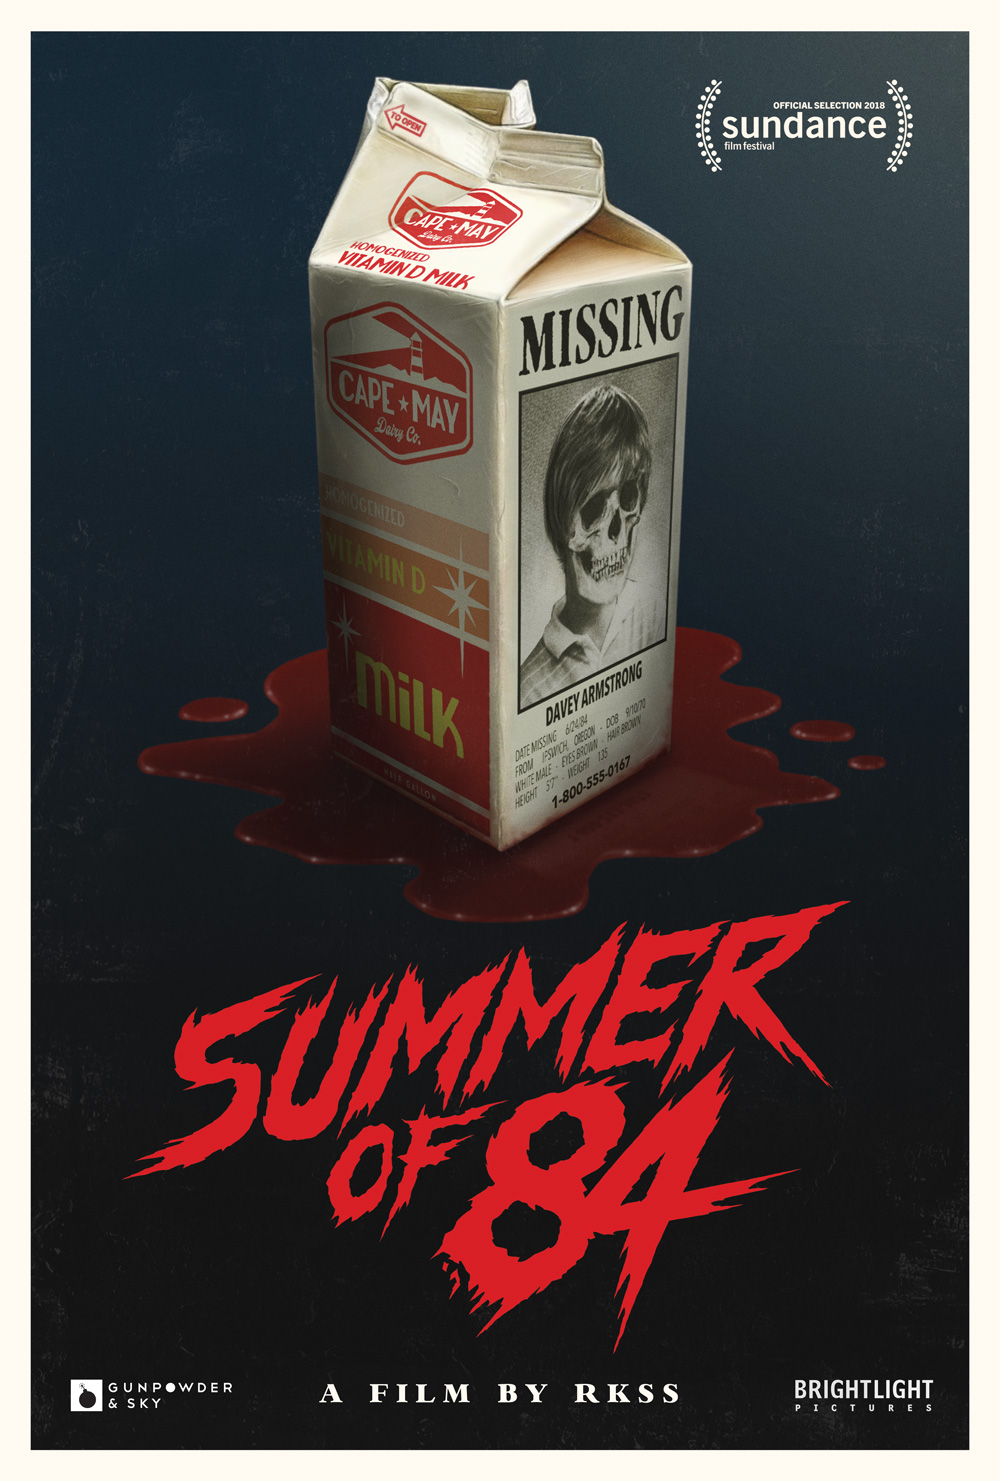 Poster for Summer of '84